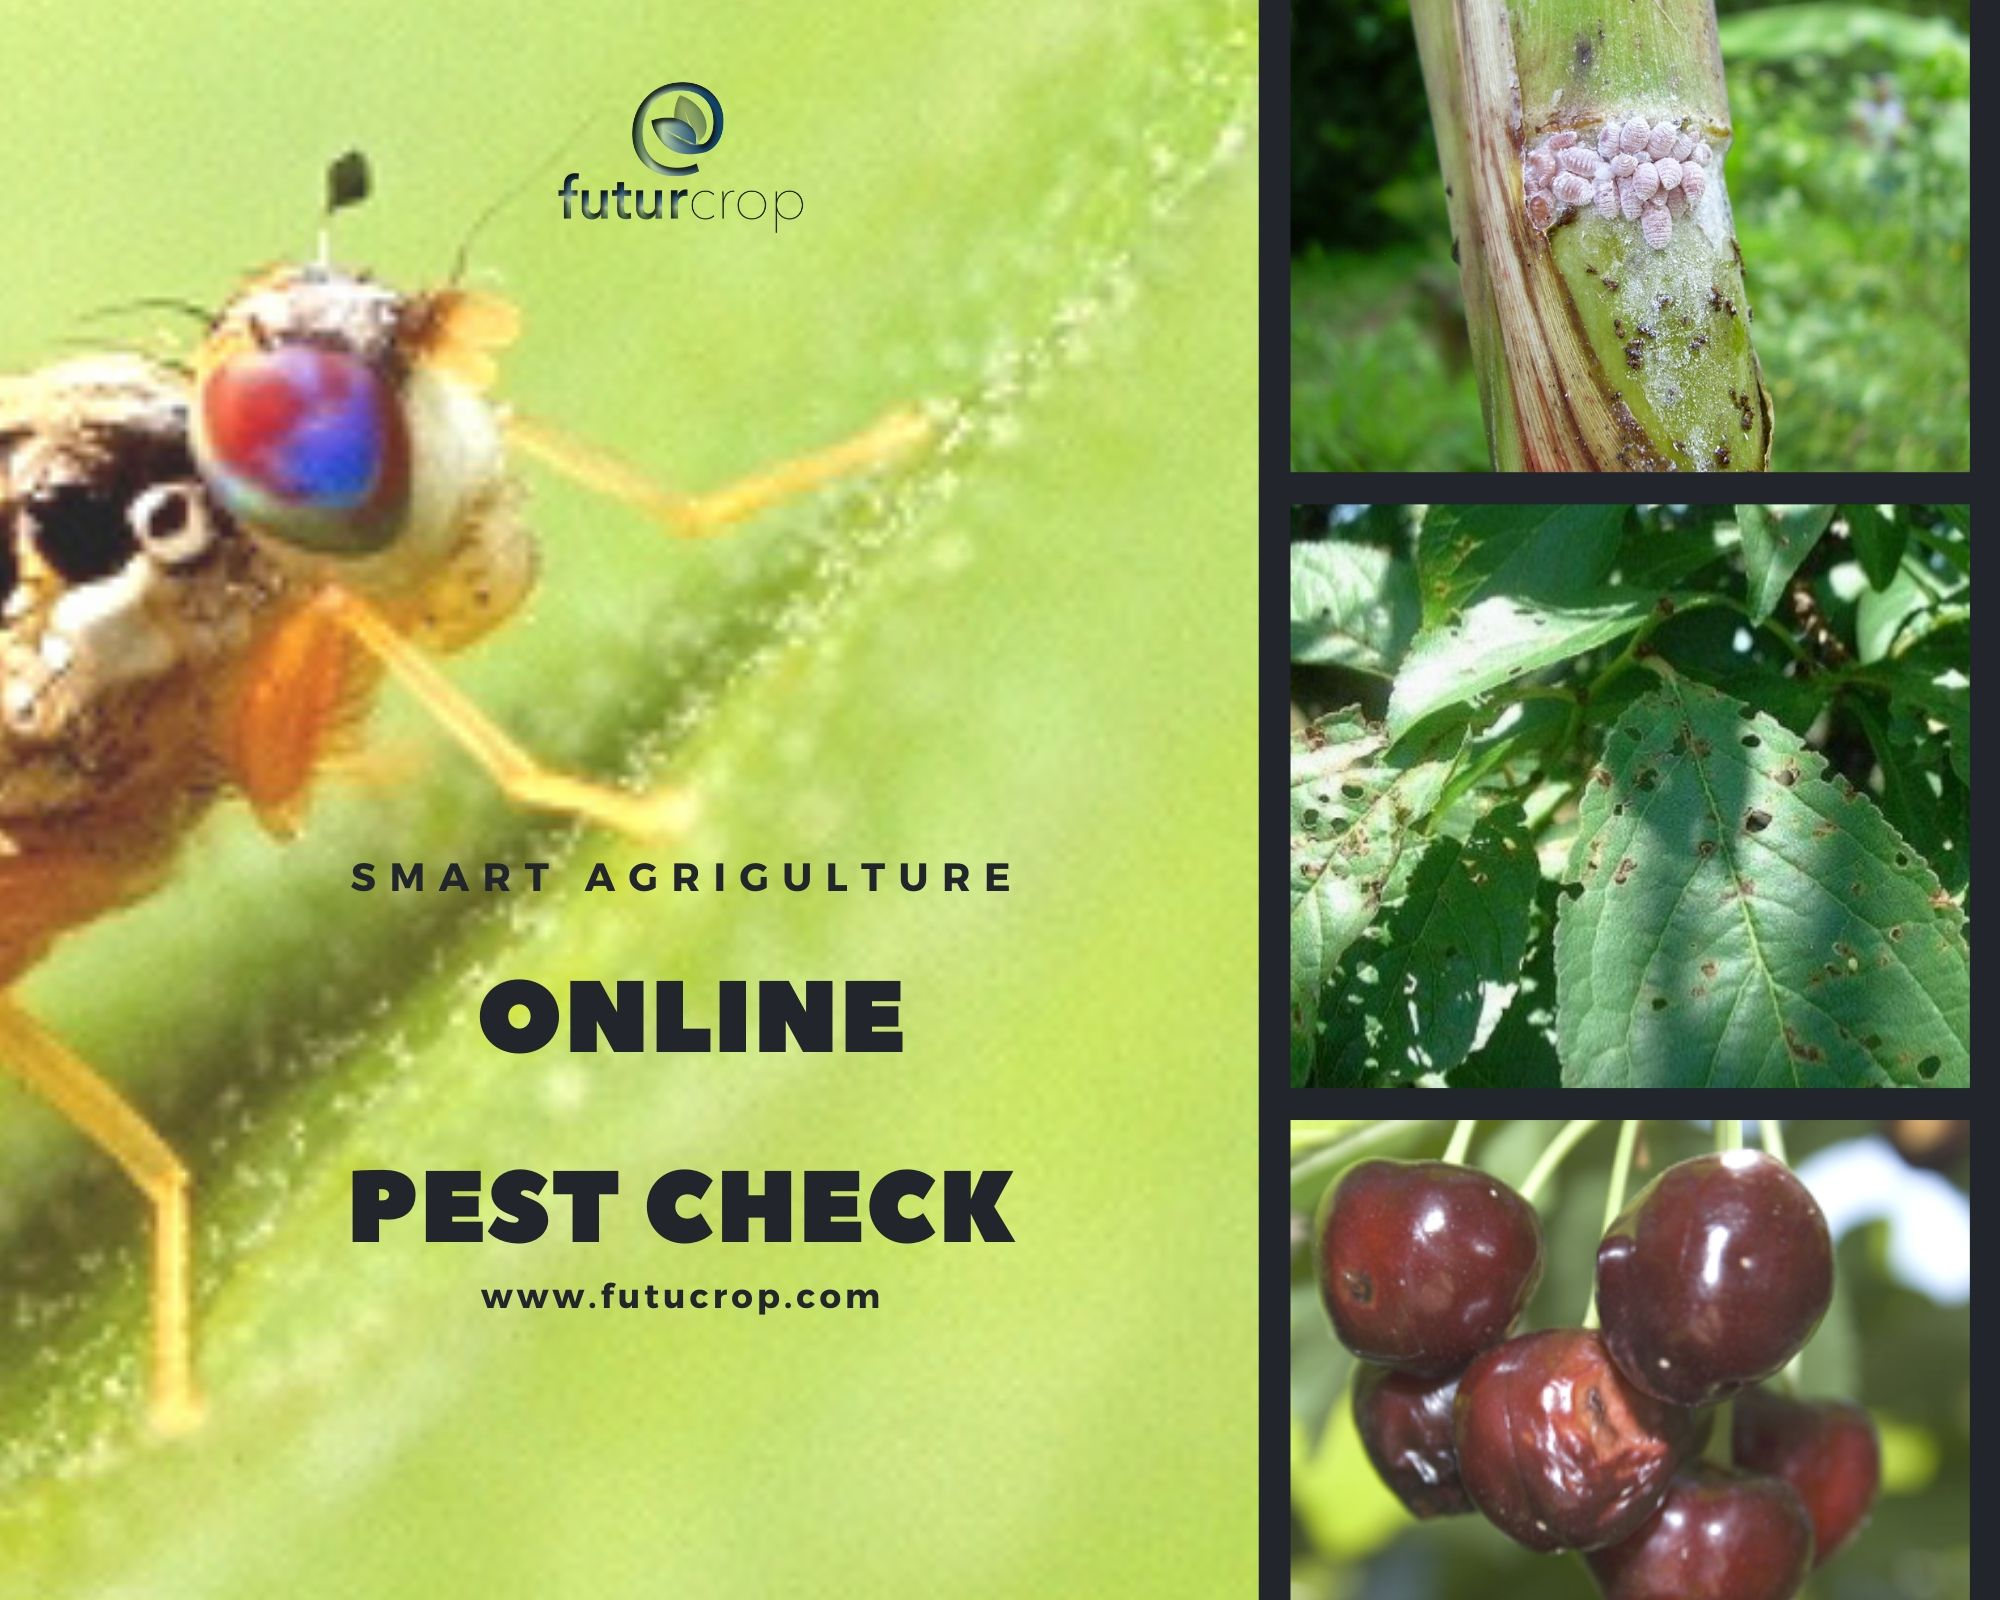 Online pest identification tool, by type of crop damage.